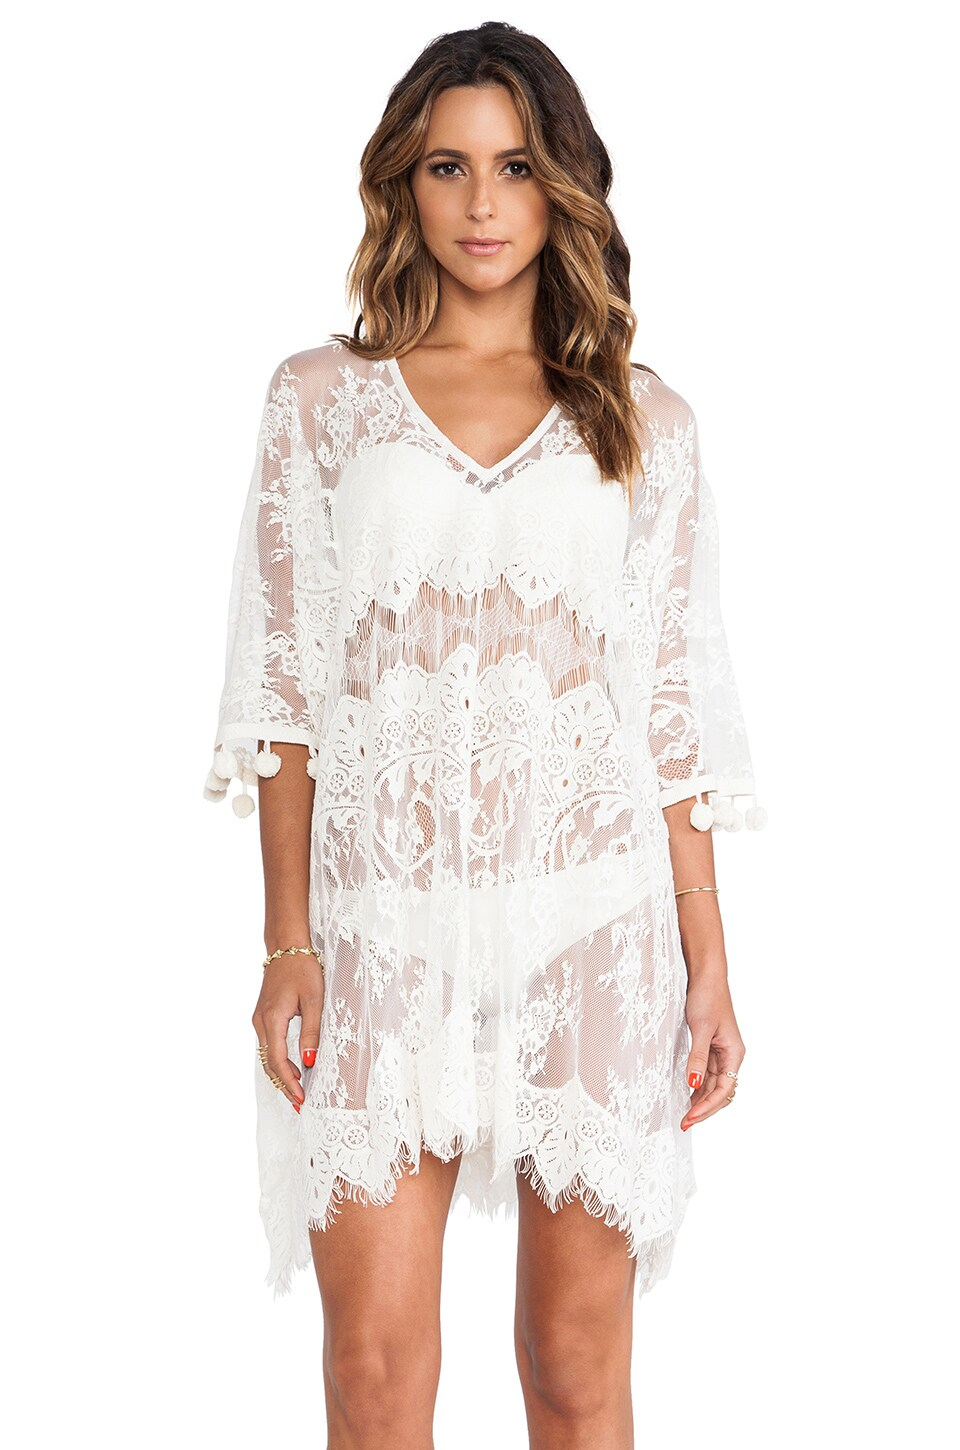 Alexis Minn Pom Pom Caftan Dress in Cream Lace